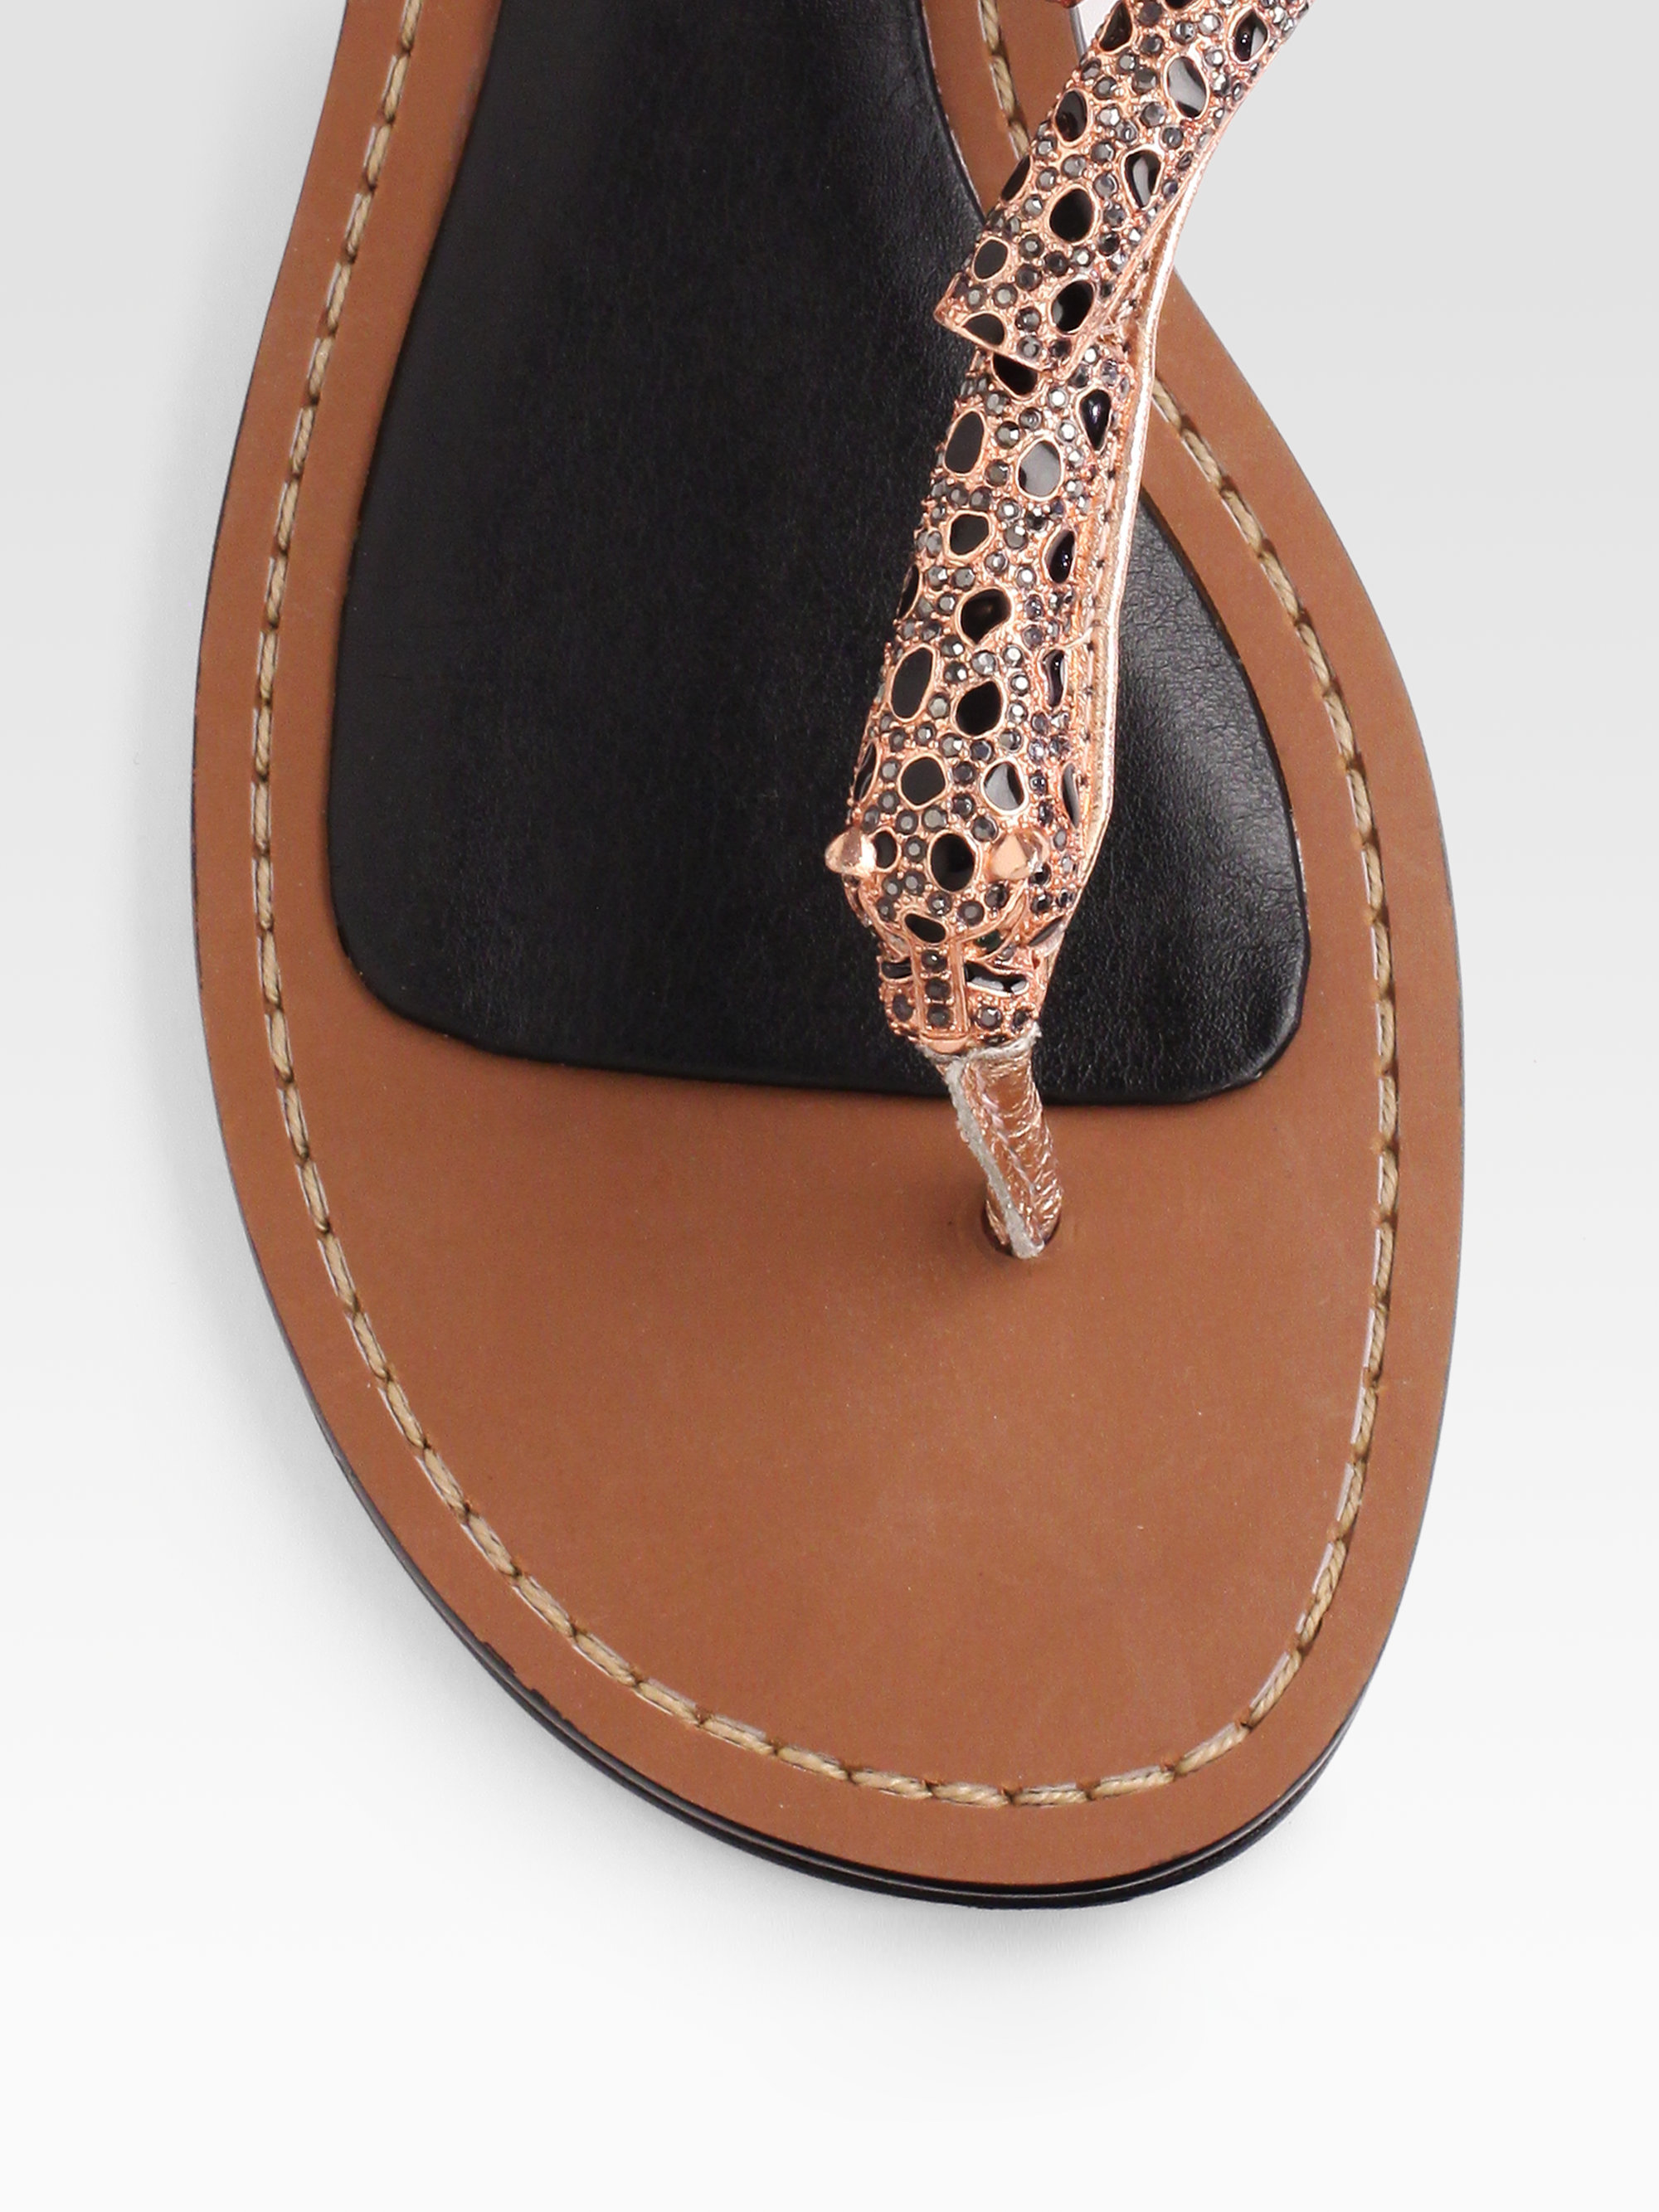 8f19627775dfc Lyst - Boutique 9 Rhinestone Panther Sandals in Brown